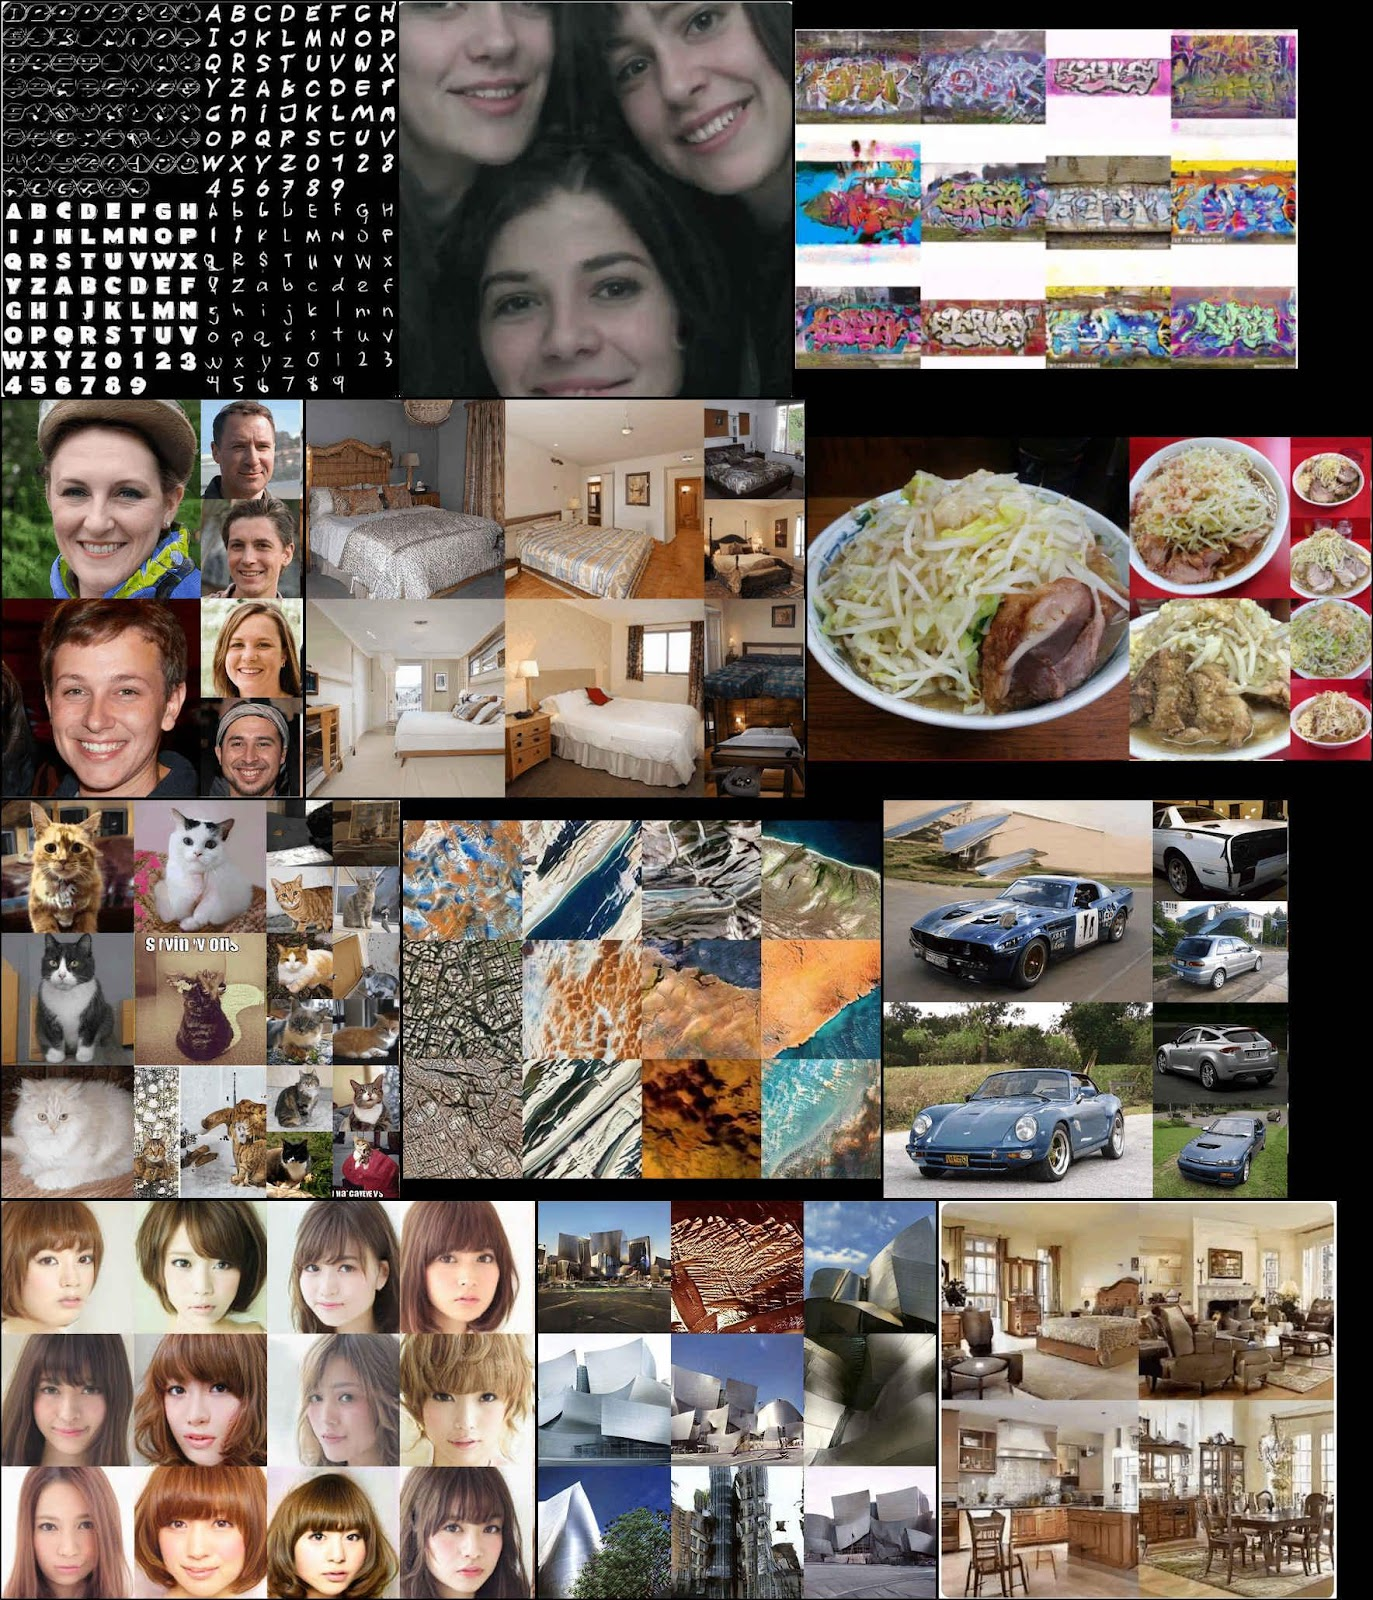 Imagequilt visualization of the wide range of visual subjects StyleGAN has been applied to